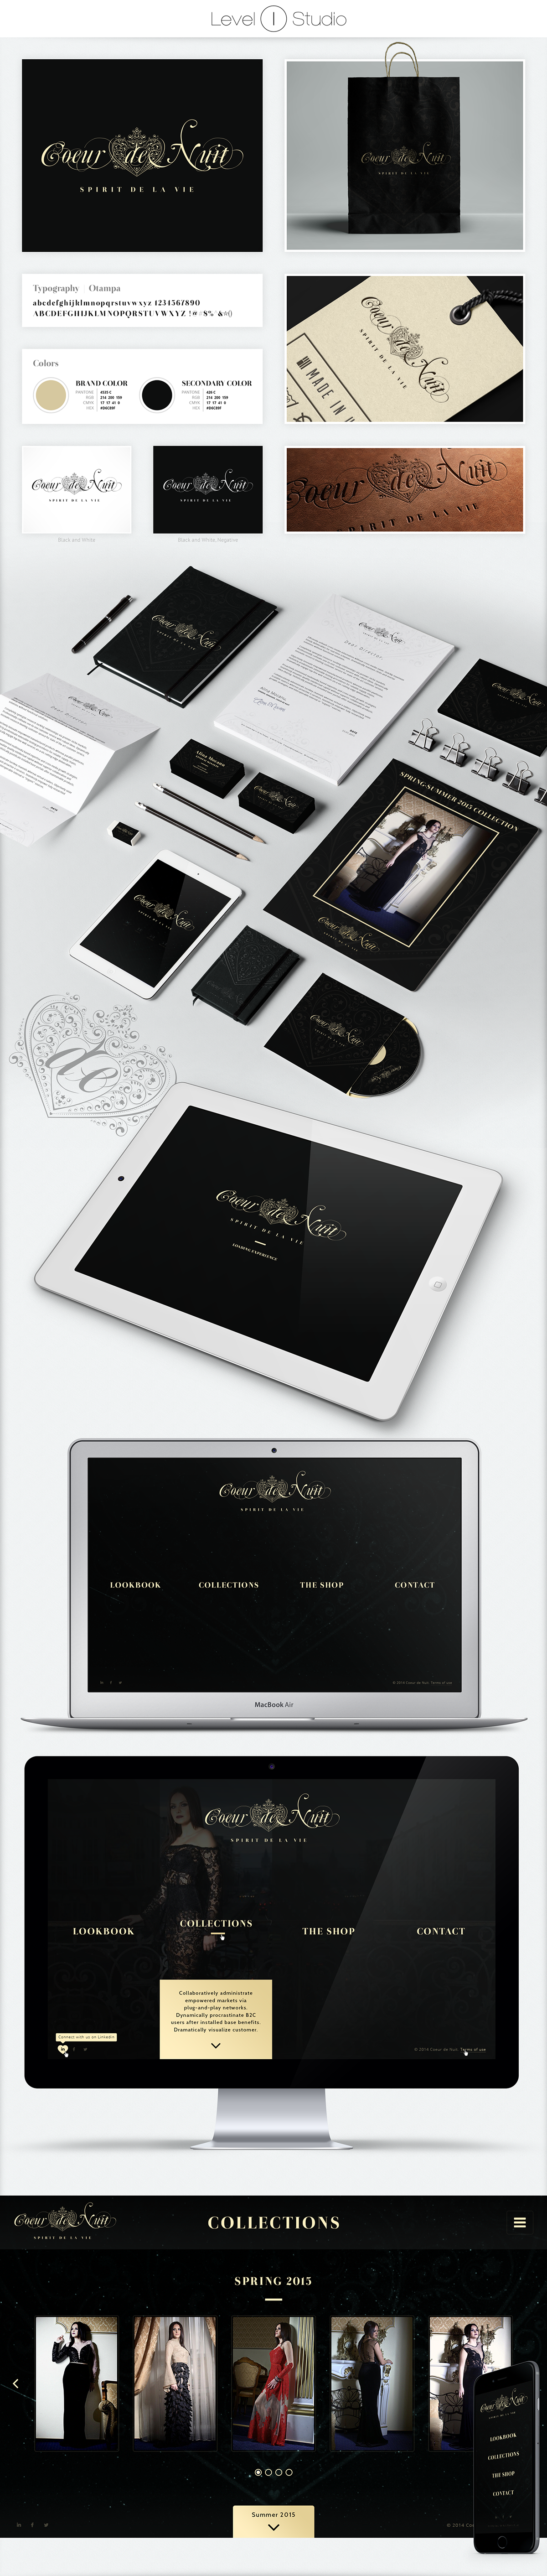 Corporate Identity Website Design Clothing fancy user interface design Responsive mobile clean sexy Logo Design artsy